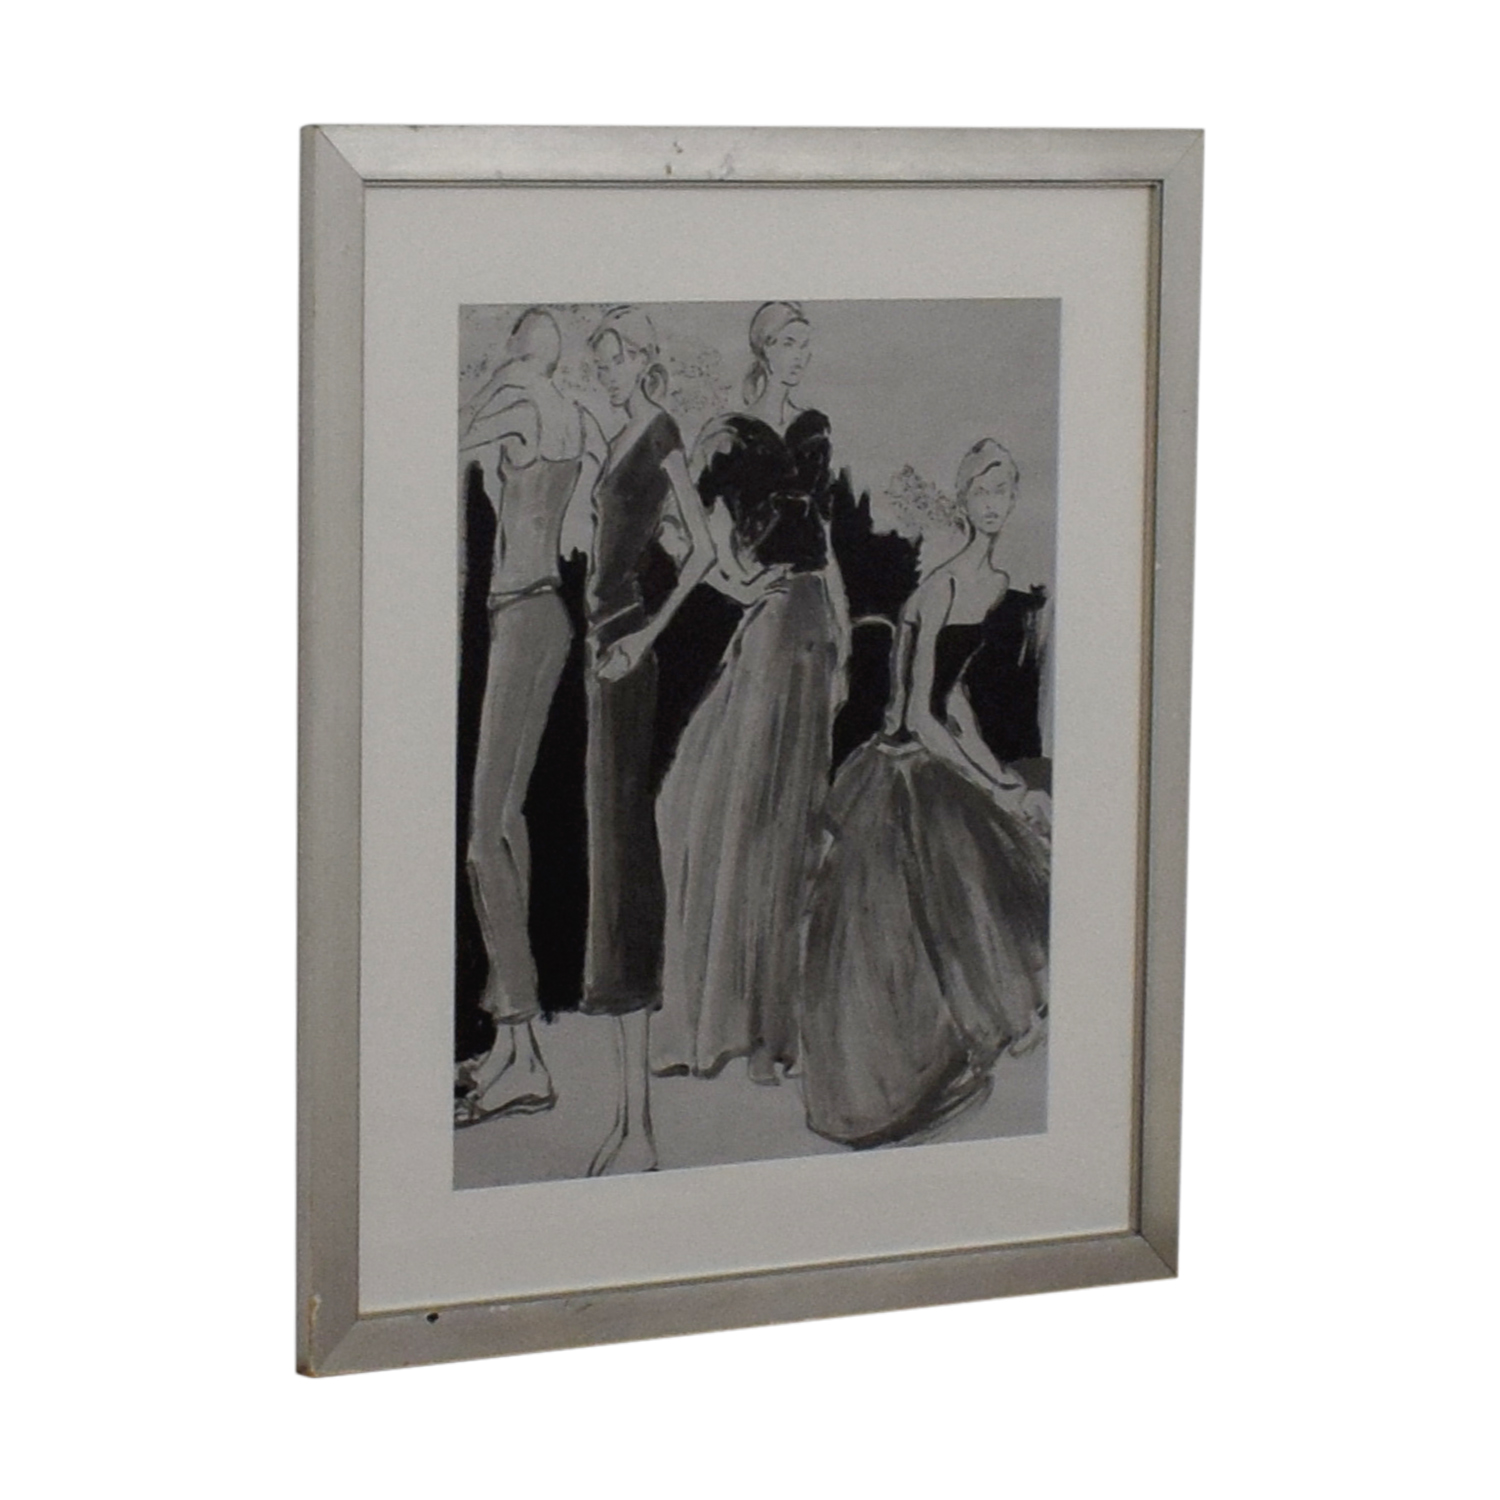 Black and White Fashion Sketch Framed Art Decor